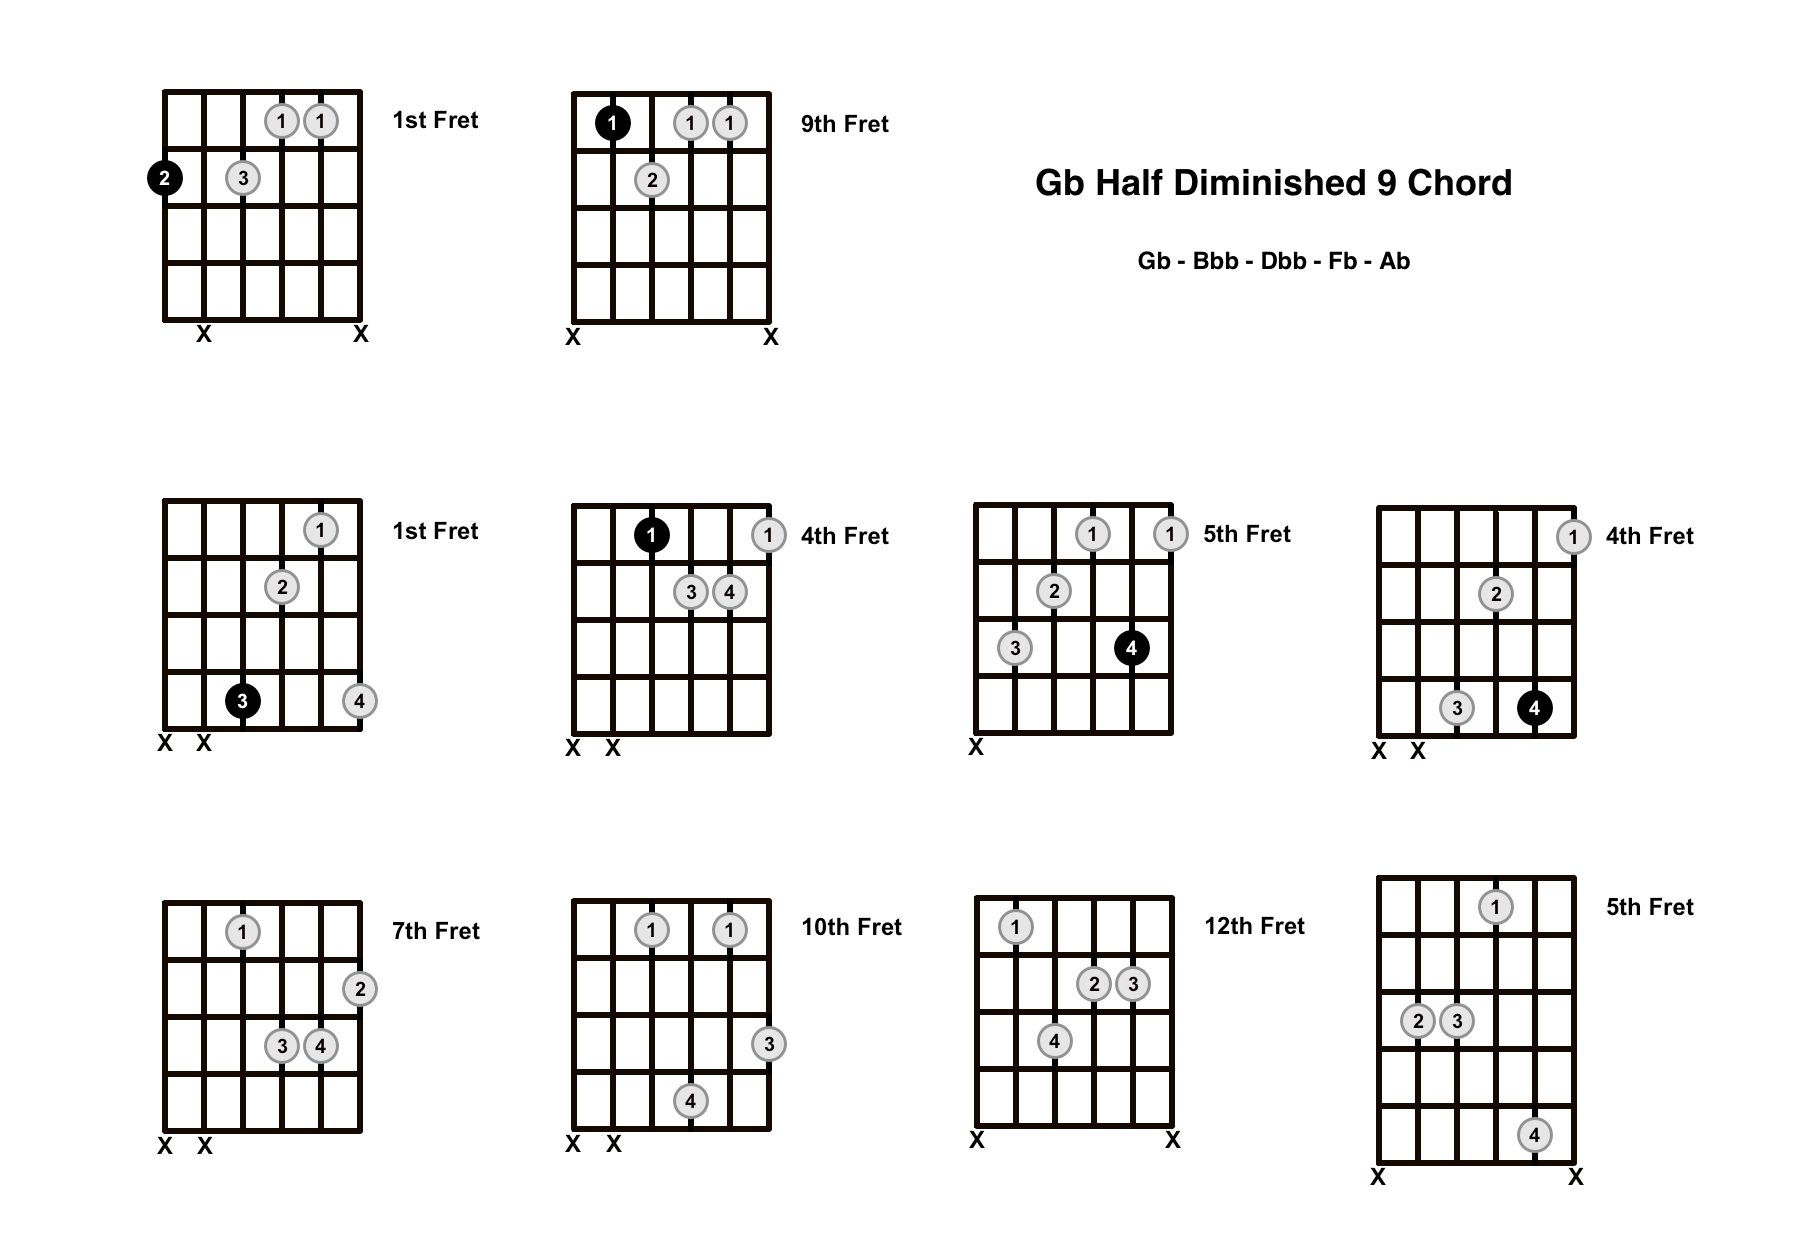 Gbm9b5 Chord On The Guitar (G Flat Half Diminished 9) – Diagrams, Finger Positions and Theory